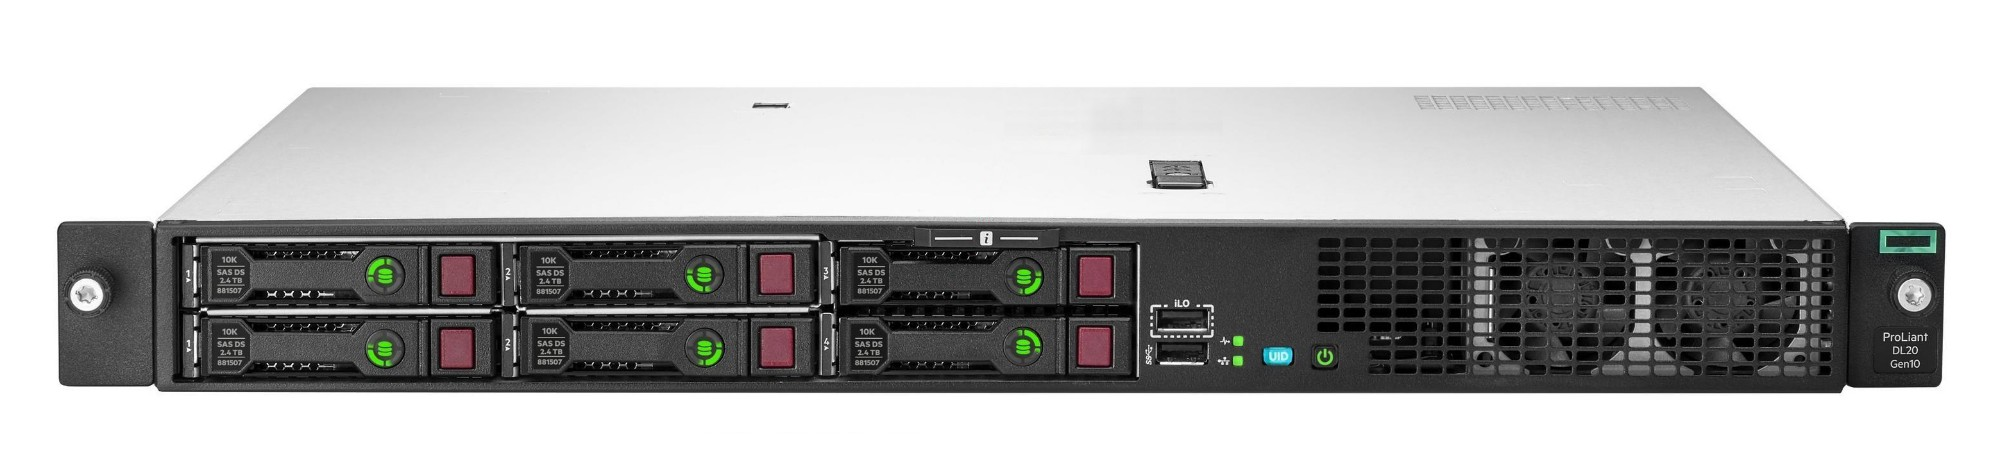 Hewlett Packard Enterprise ProLiant DL20 Gen10 servidor Intel Xeon E 3,4 GHz 16 GB DDR4-SDRAM 12 TB Bastidor (1U) 500 W